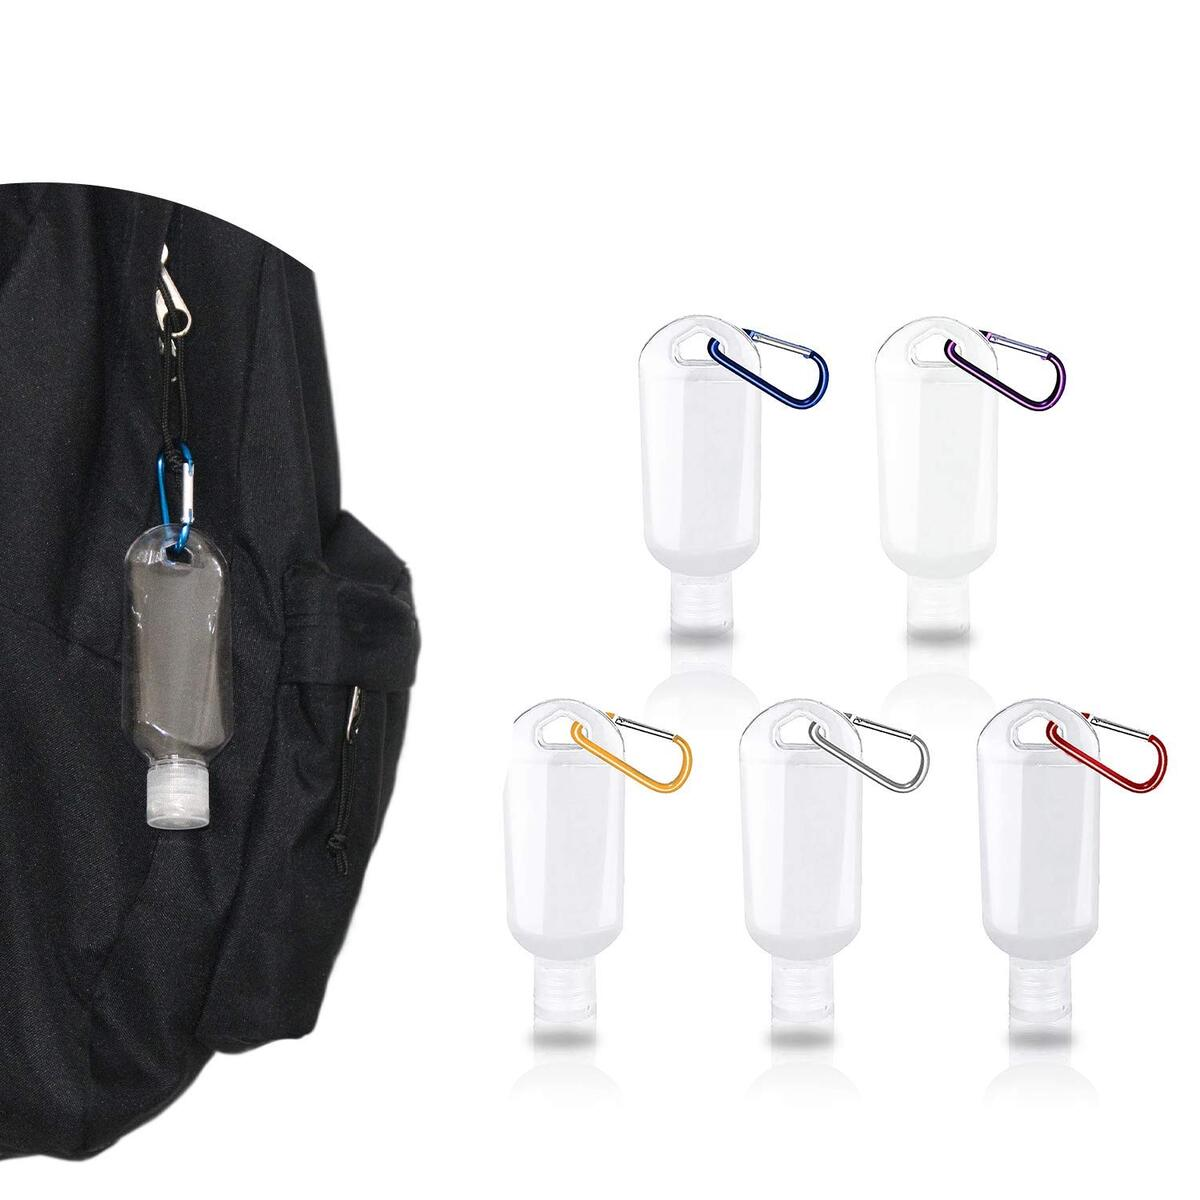 Travel Bottles with Keychain(5 Pack)-1.7OZ/50ML Leak Proof Empty Plastic Squeeze Hand Sanitizer Holder for Backpack